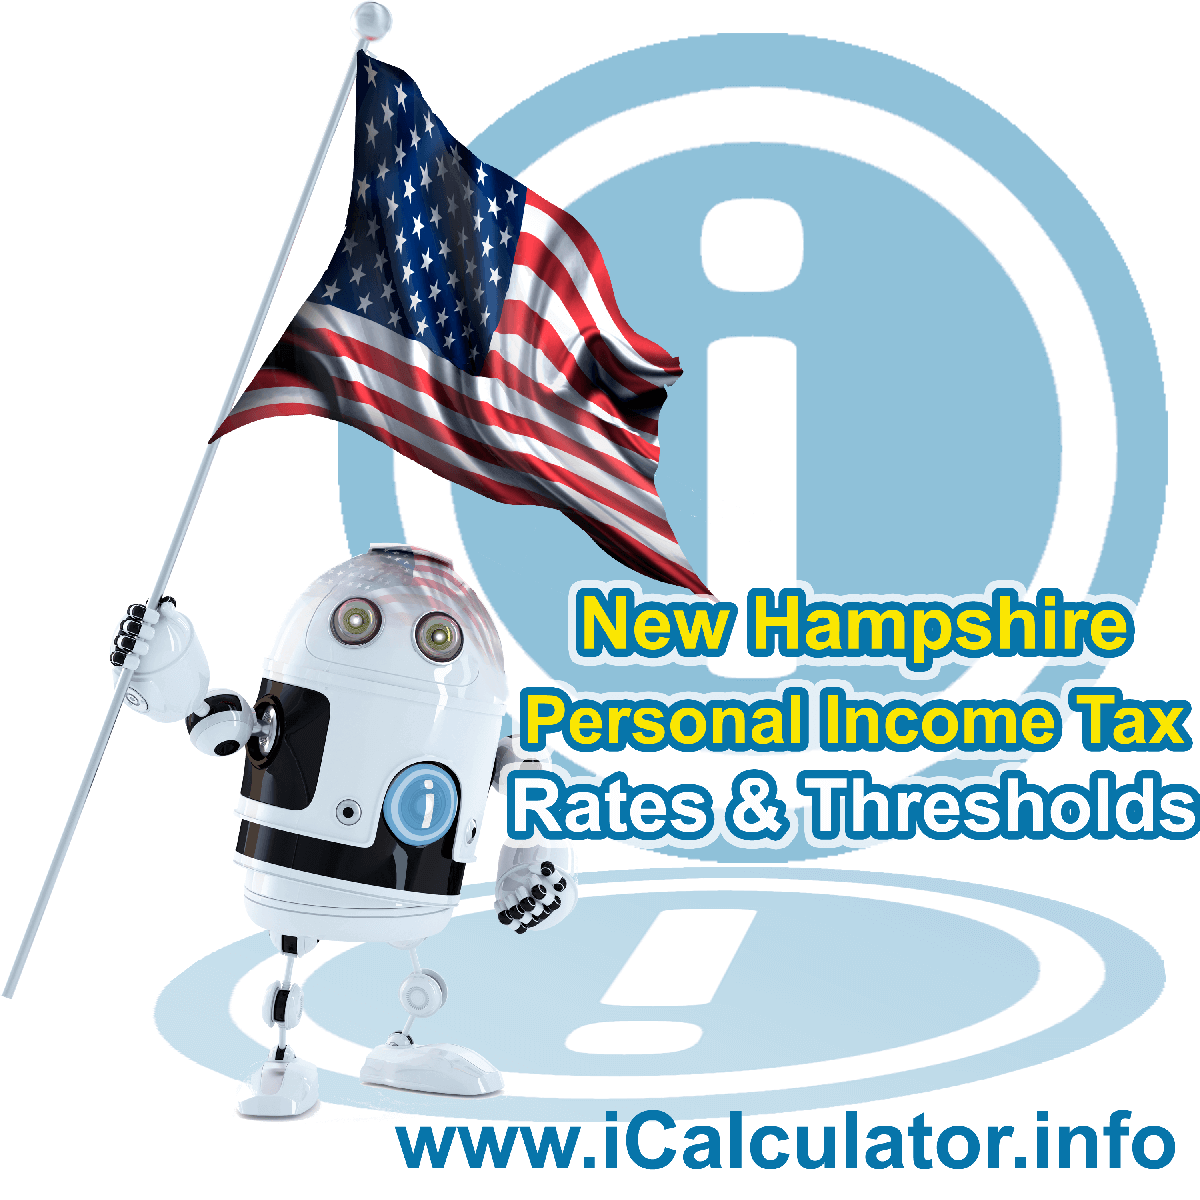 New Hampshire State Tax Tables 2021. This image displays details of the New Hampshire State Tax Tables for the 2021 tax return year which is provided in support of the 2021 US Tax Calculator